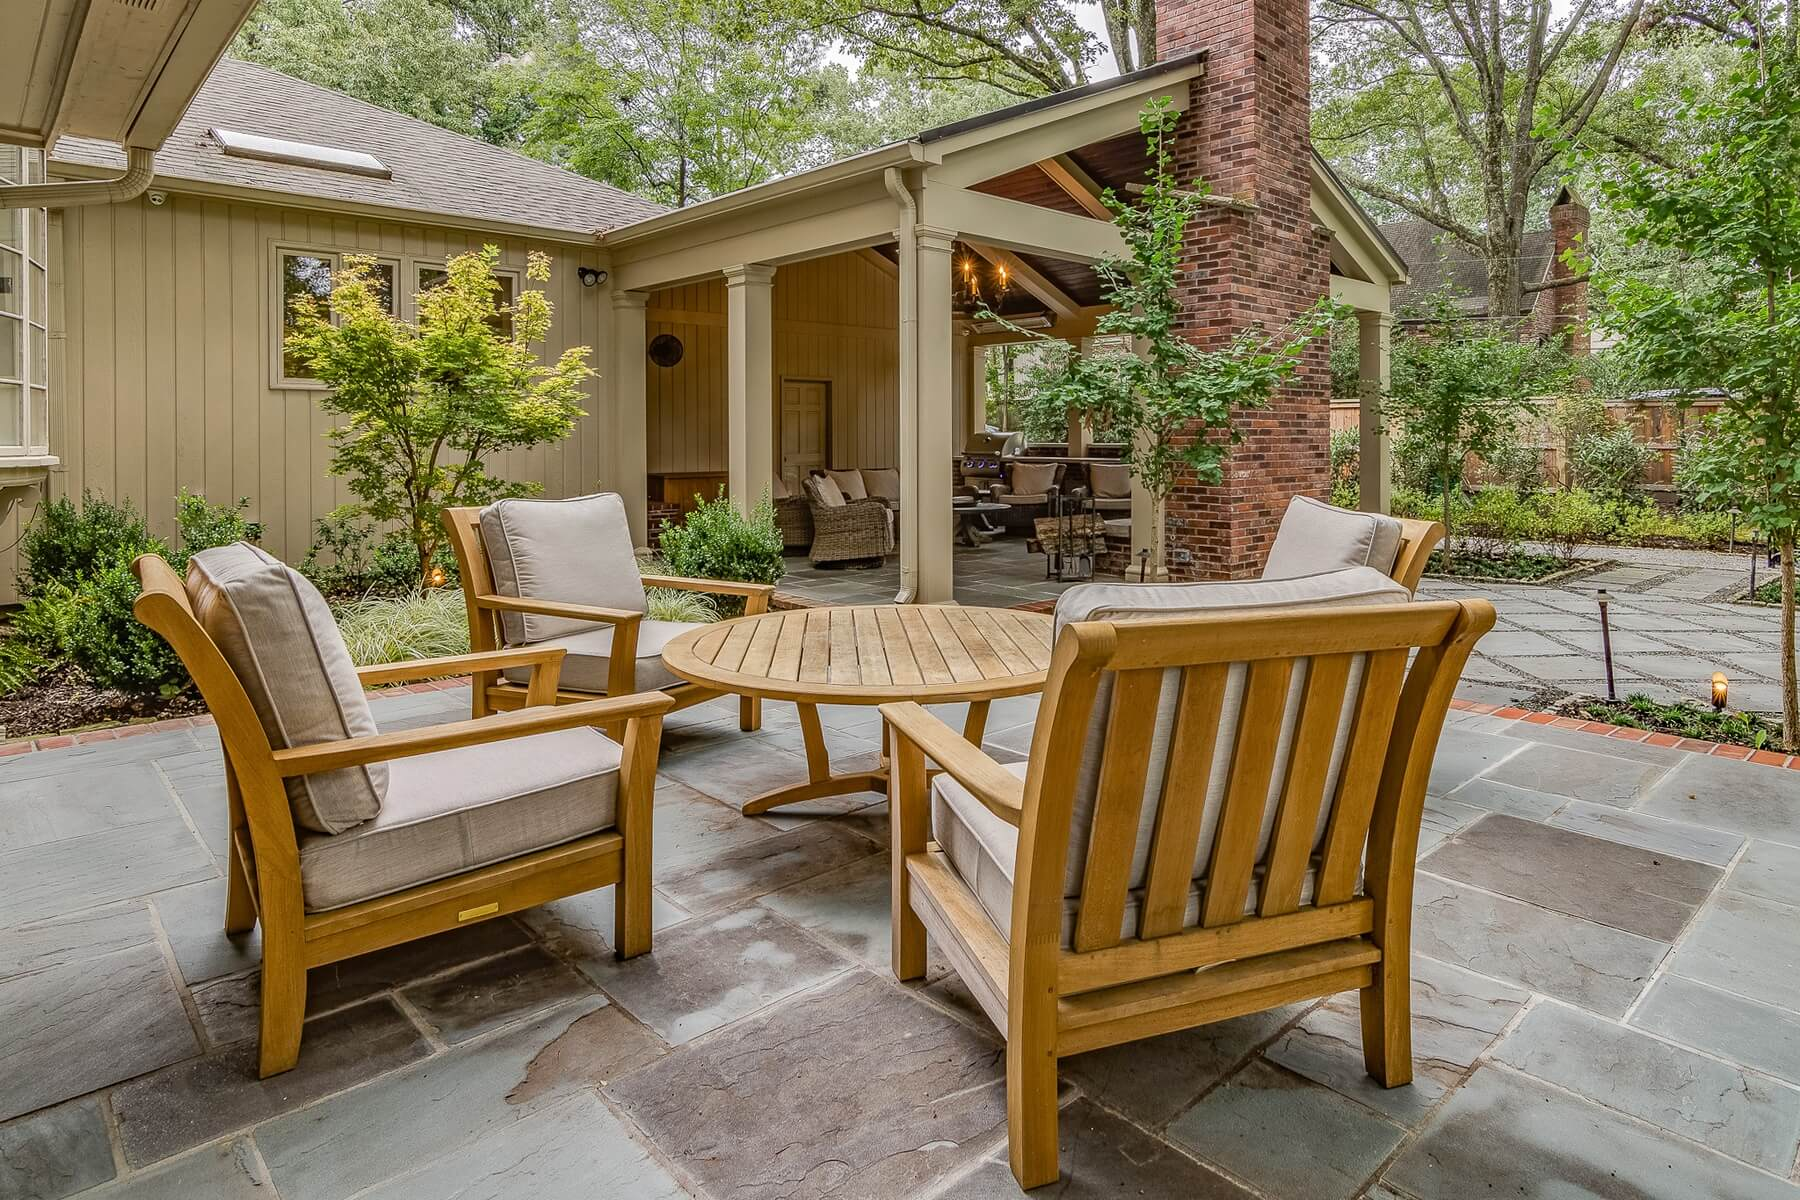 Bishop sells teak furnishings in a variety of styles to suit a variety of outdoor rooms. Teak stands up well in uncovered spaces, like this slate patio.